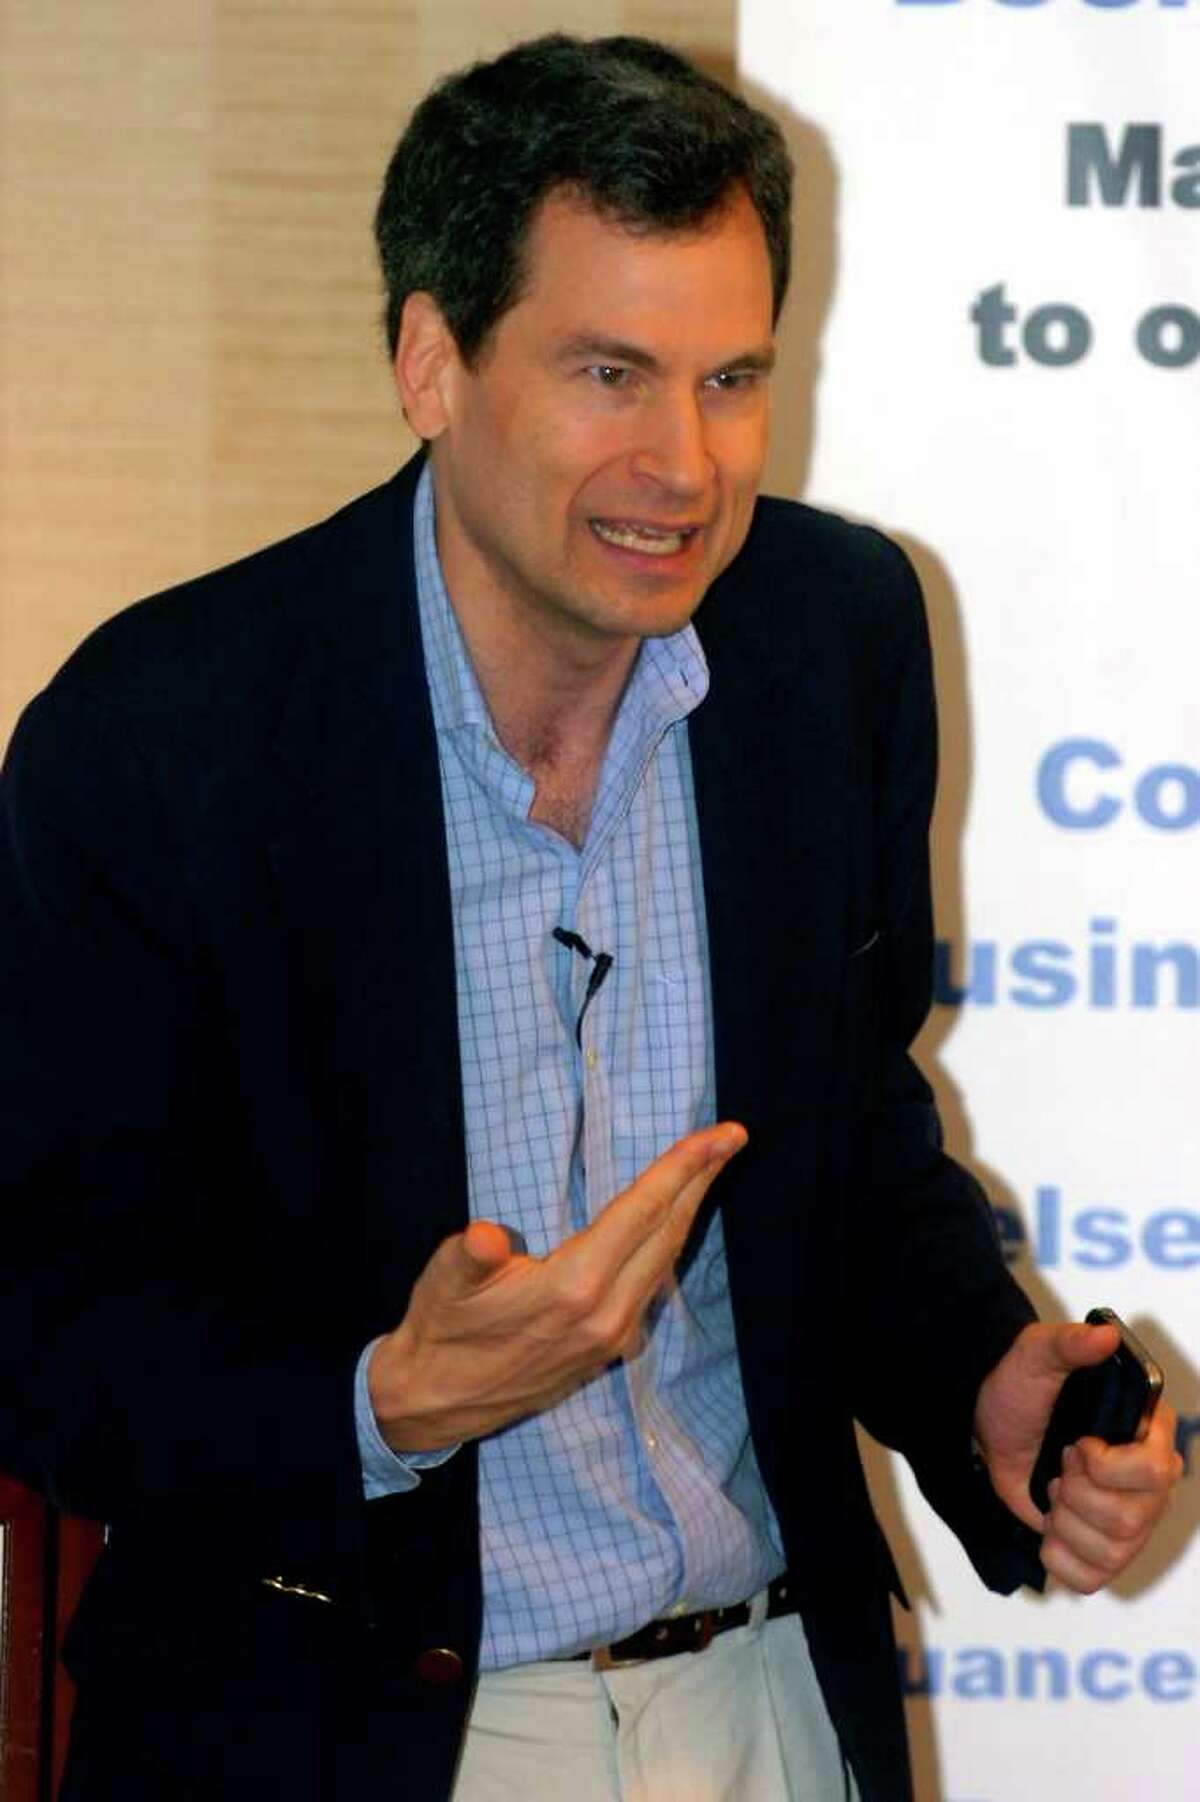 David Pogue, the New York Times technology columnist and CBS News correspondent, speaks at the Technology Today Business Forum at the Courtyard by Marriott in Shelton, Conn. Thursday, May 19th 2011. Pogue and his wife have been charged with disorderly conduct following a domestic dispute Monday at their Westport home that police said turned physical.